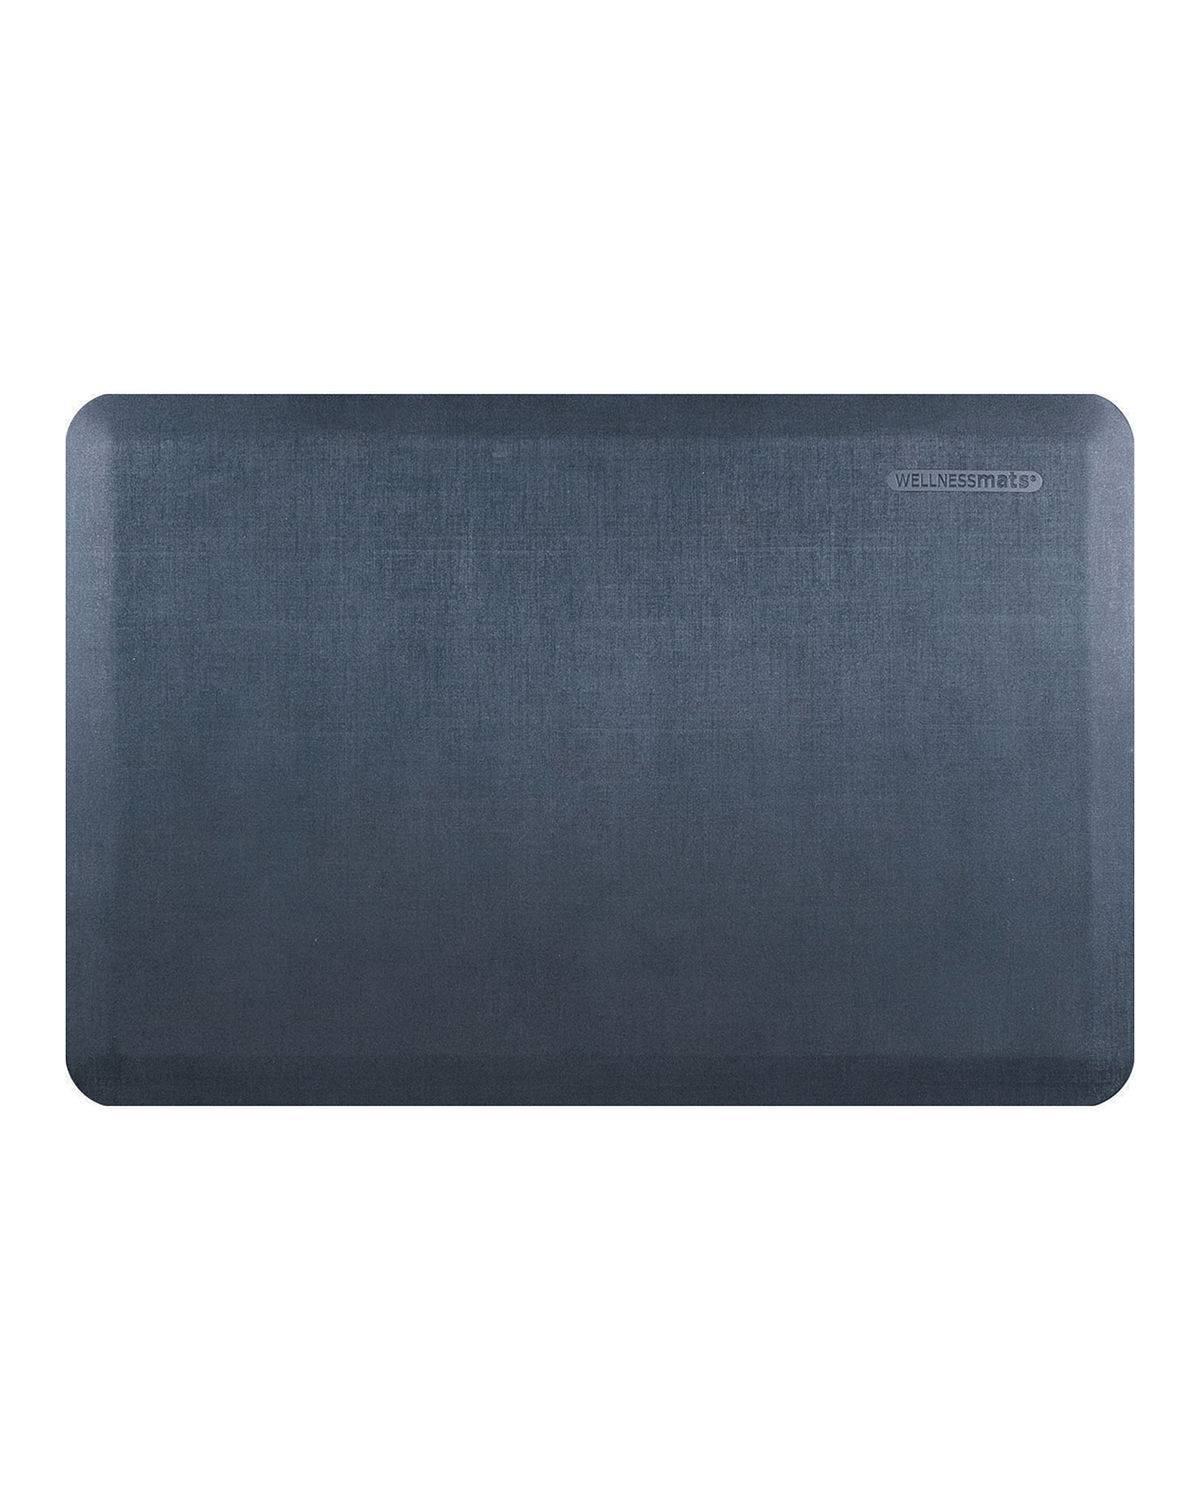 WellnessMats Linen Anti-Fatigue Kitchen Mat, 3' x 2'